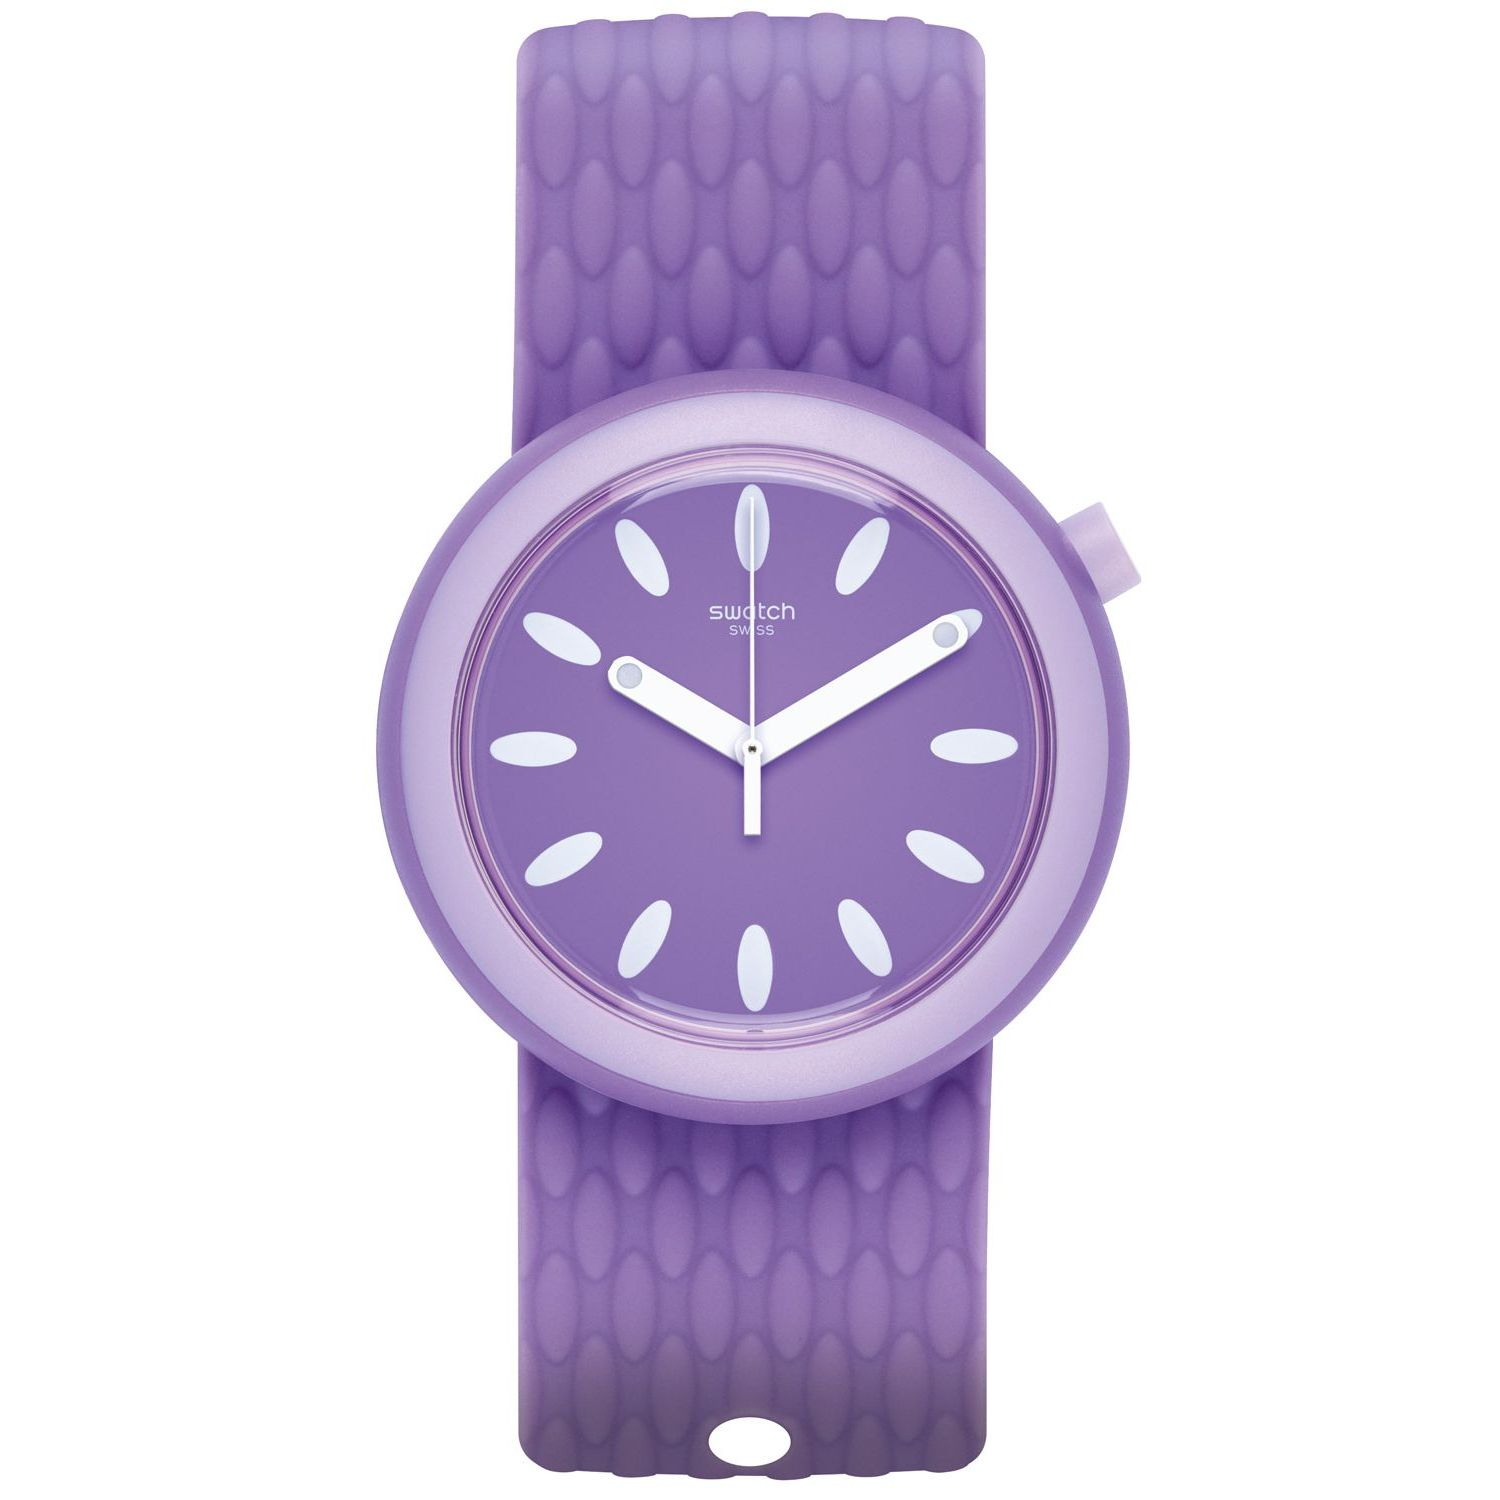 twodoswatches watches again once com en swatch switch brands watch